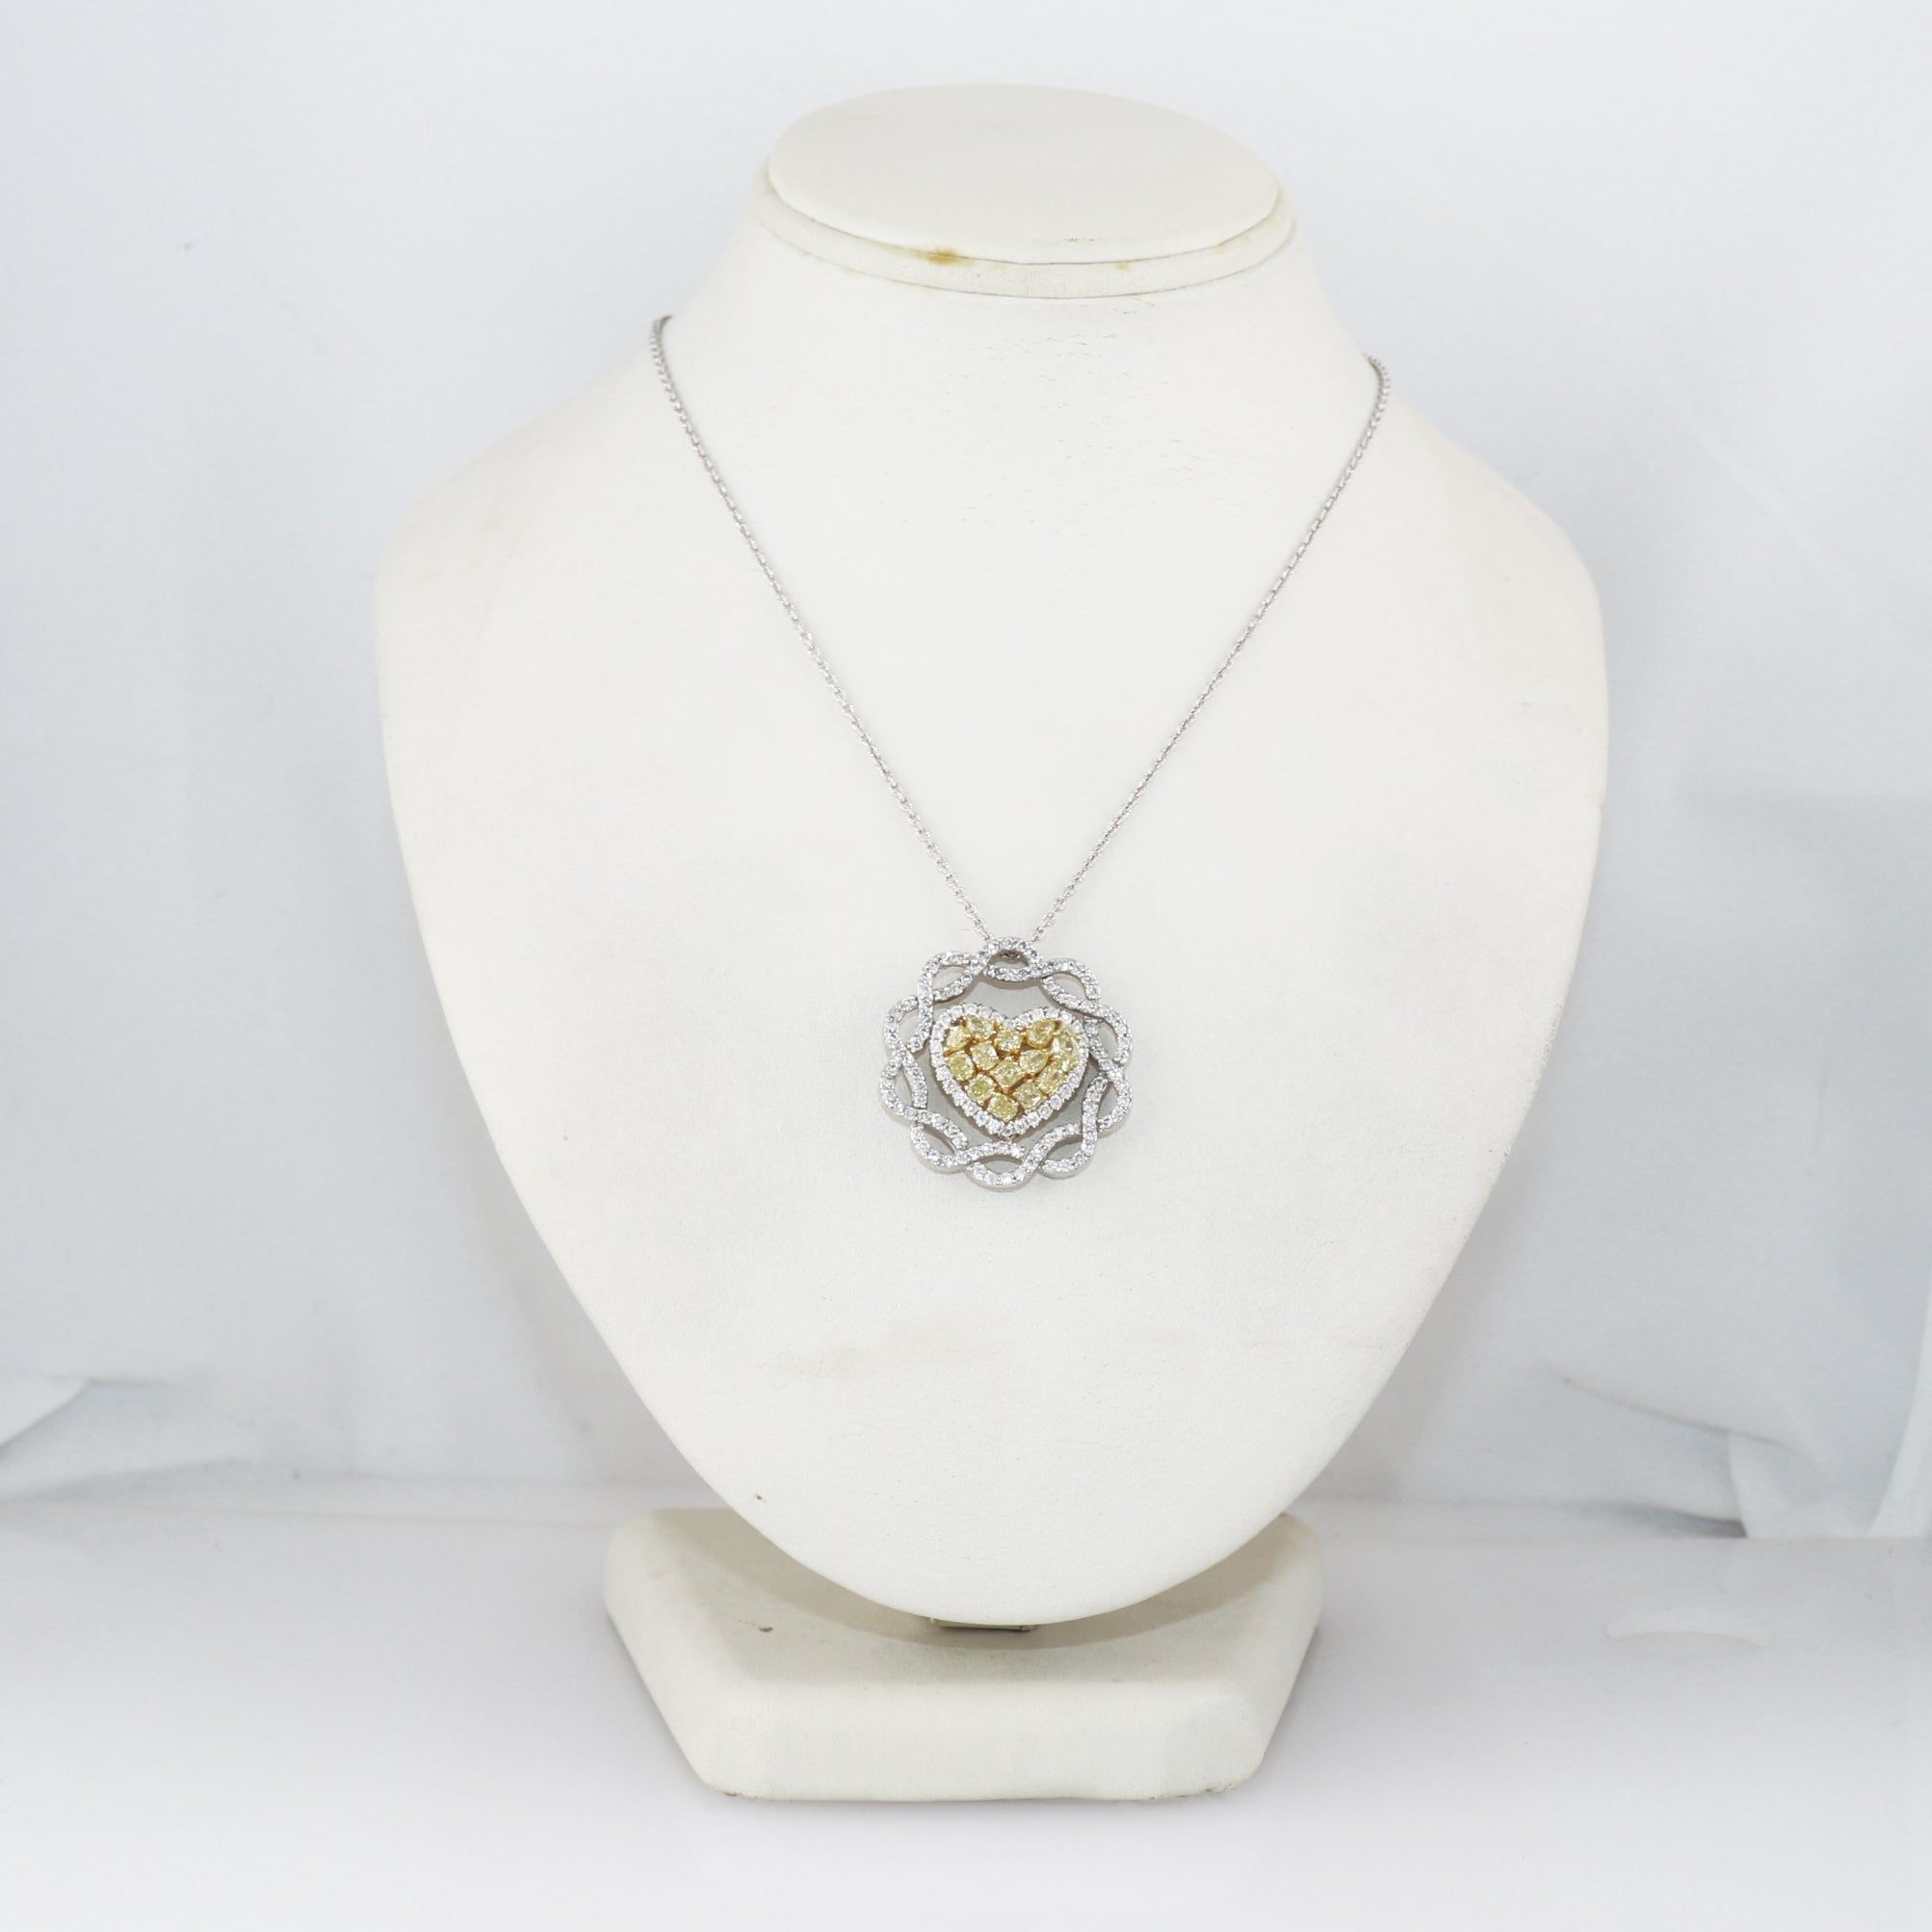 "Modern 14k White Gold 3ctw Fancy Yellow & White Diamond 18"" Necklace"